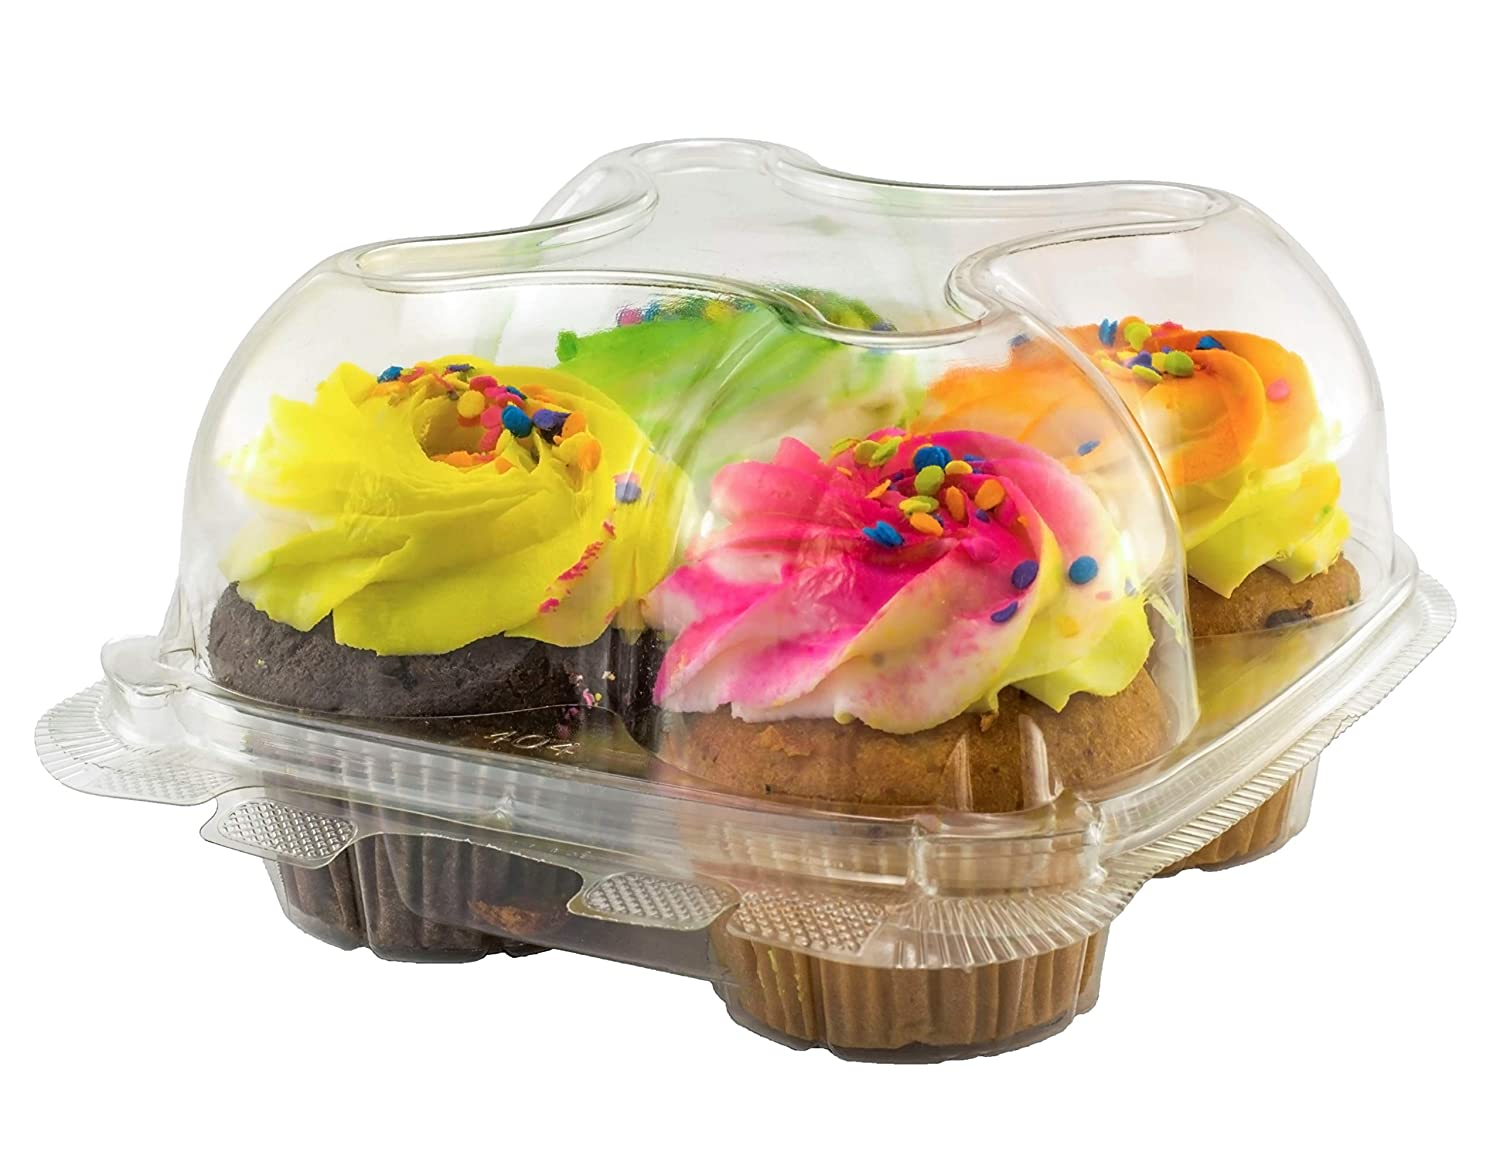 Katgely Cupcake Boxes Cupcake Containers 4 Pack Cupcake, Set of 10 Katgely Inc KAT972724